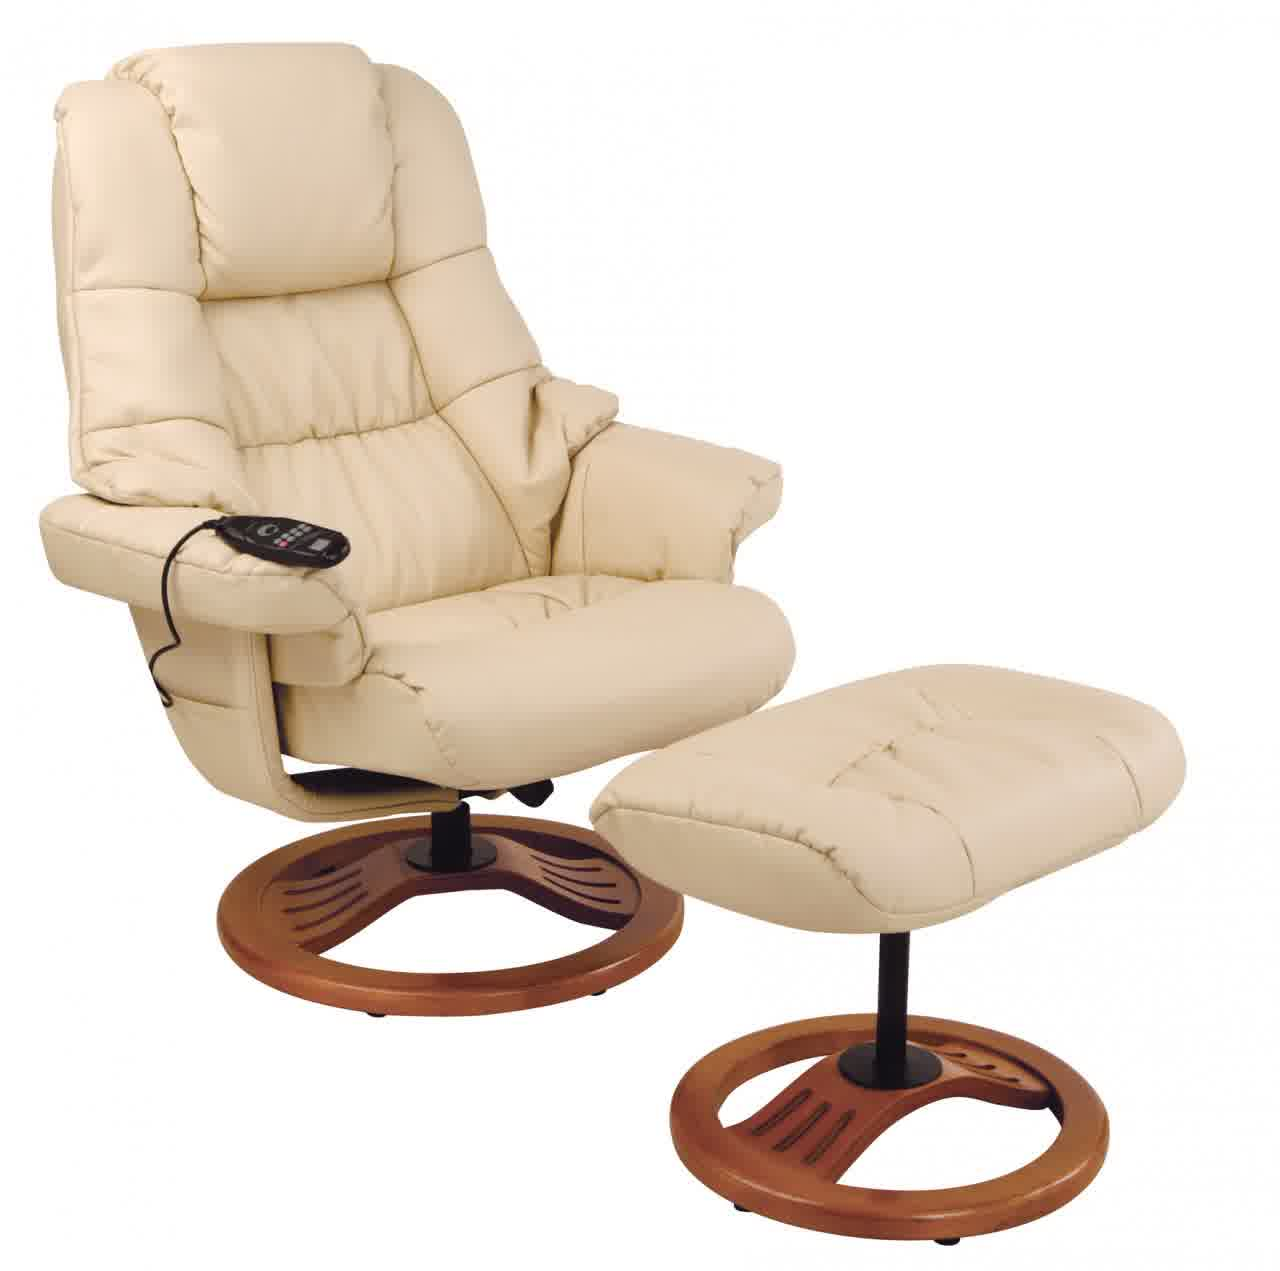 Image of: Images of Massage Recliner Chair